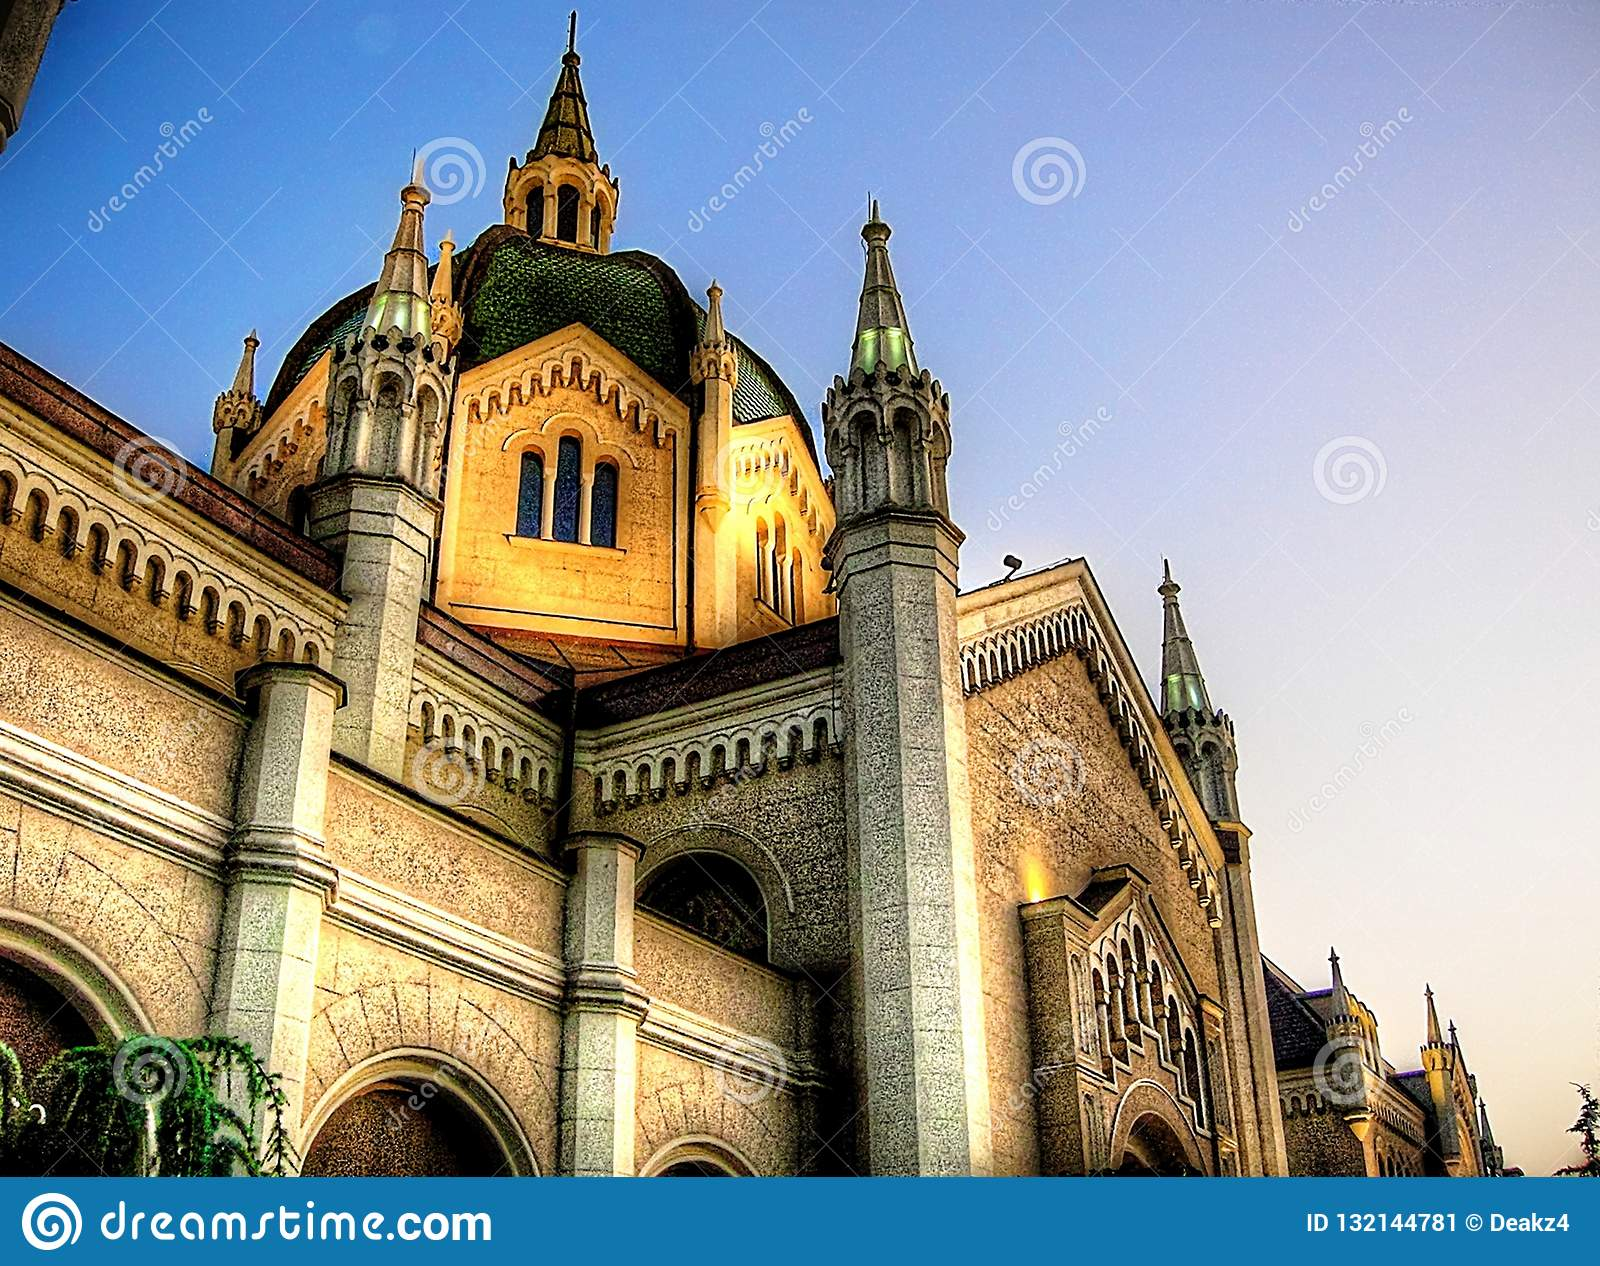 Architecture building tower landmark tourism historic old city university travel history ancient monument sky residence historical famous